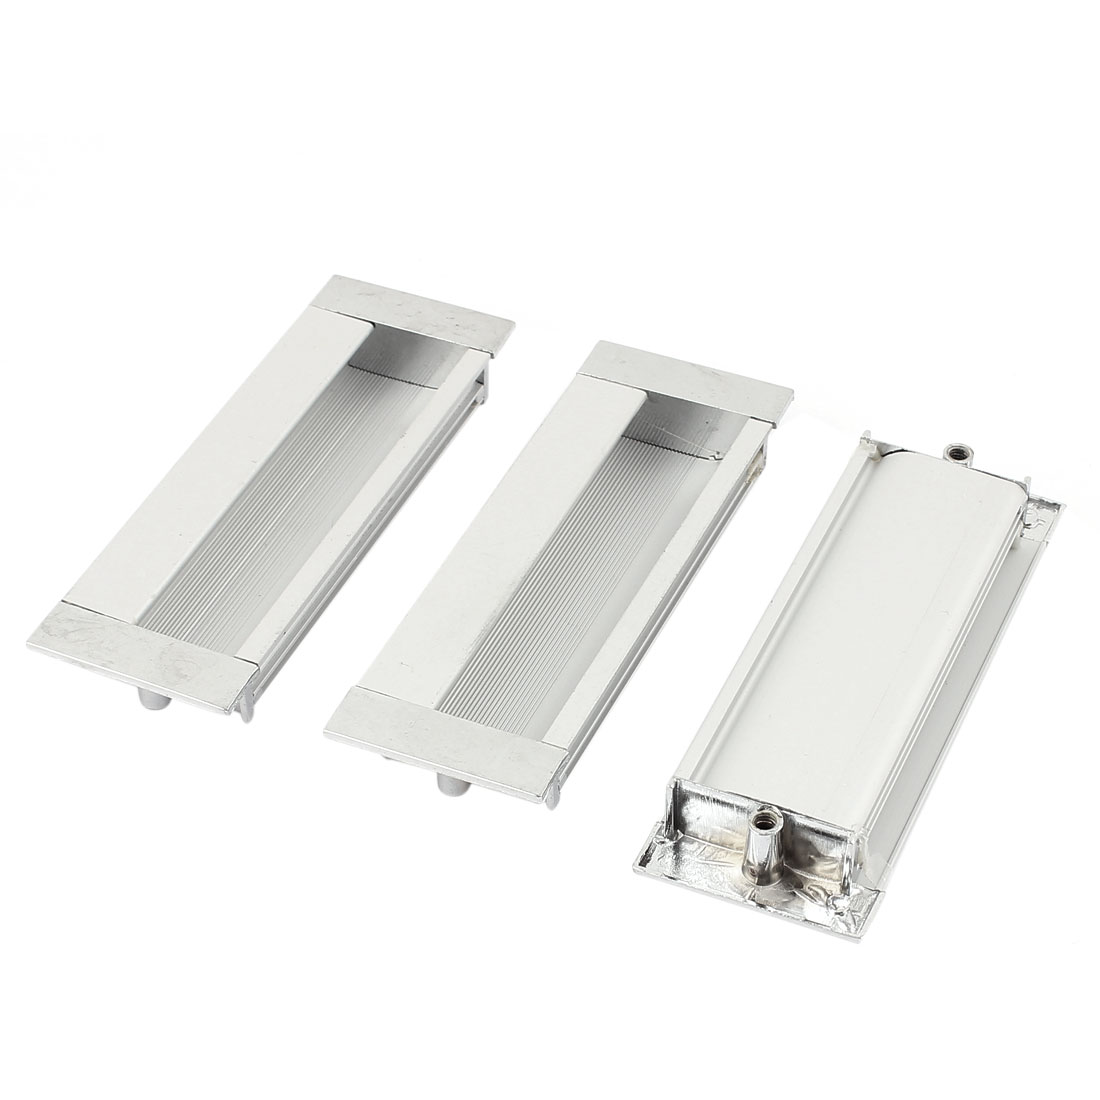 11cmx4cm Aluminium Rectangle Cabinet Door Flush Recessed Pull Handle 3PCS